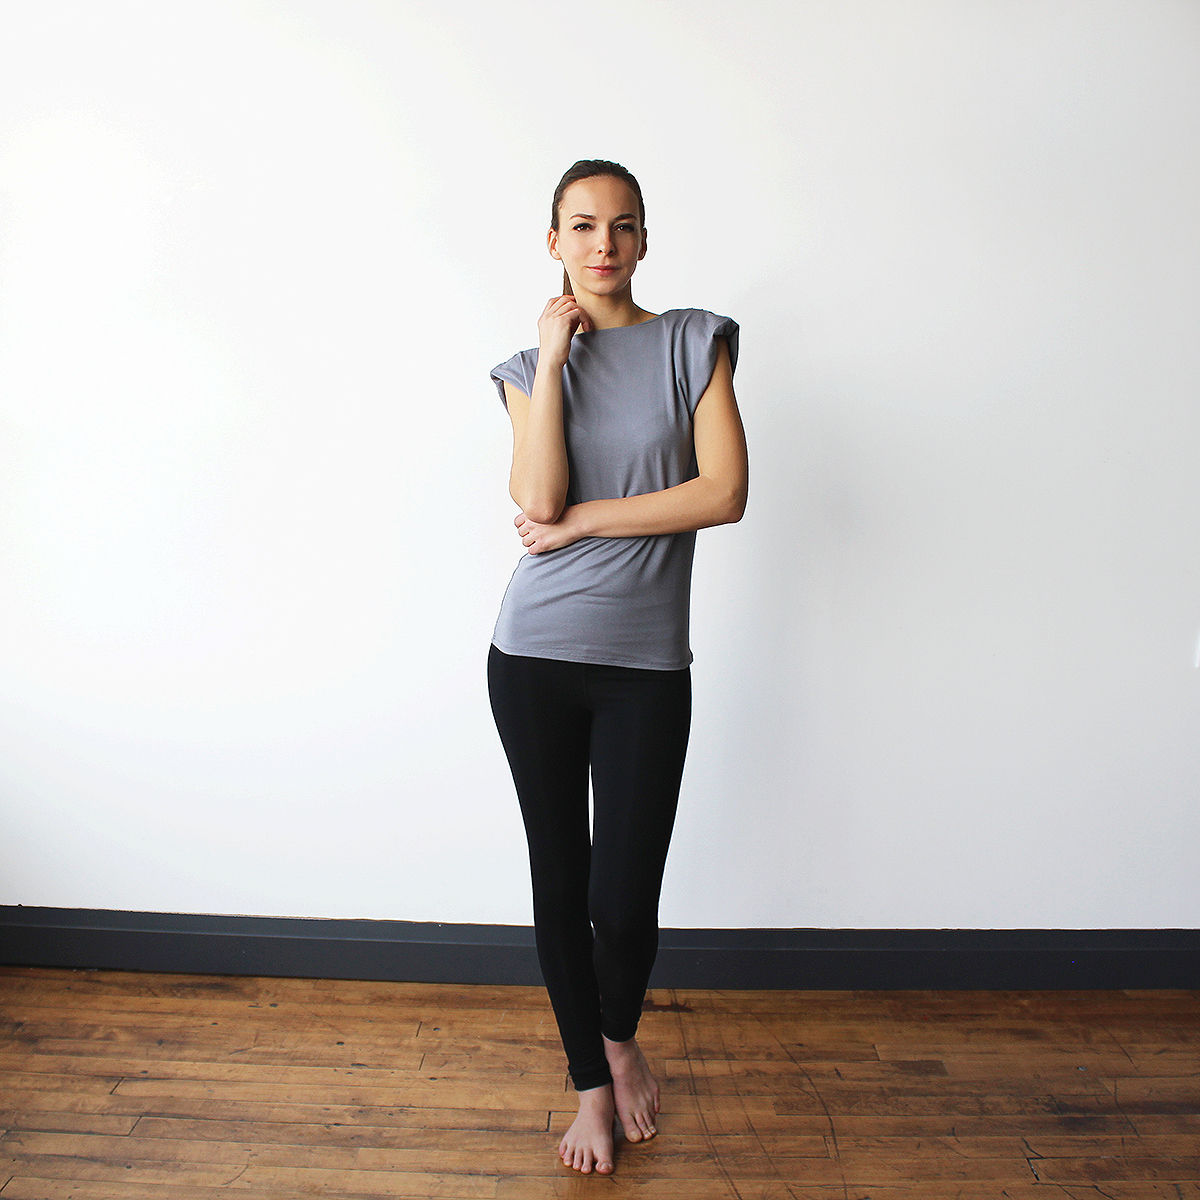 Sustainable Fabrics - Interview with Kristi Soomer of Encircled featured by popular Los Angeles fashion blogger, Nomad Moda